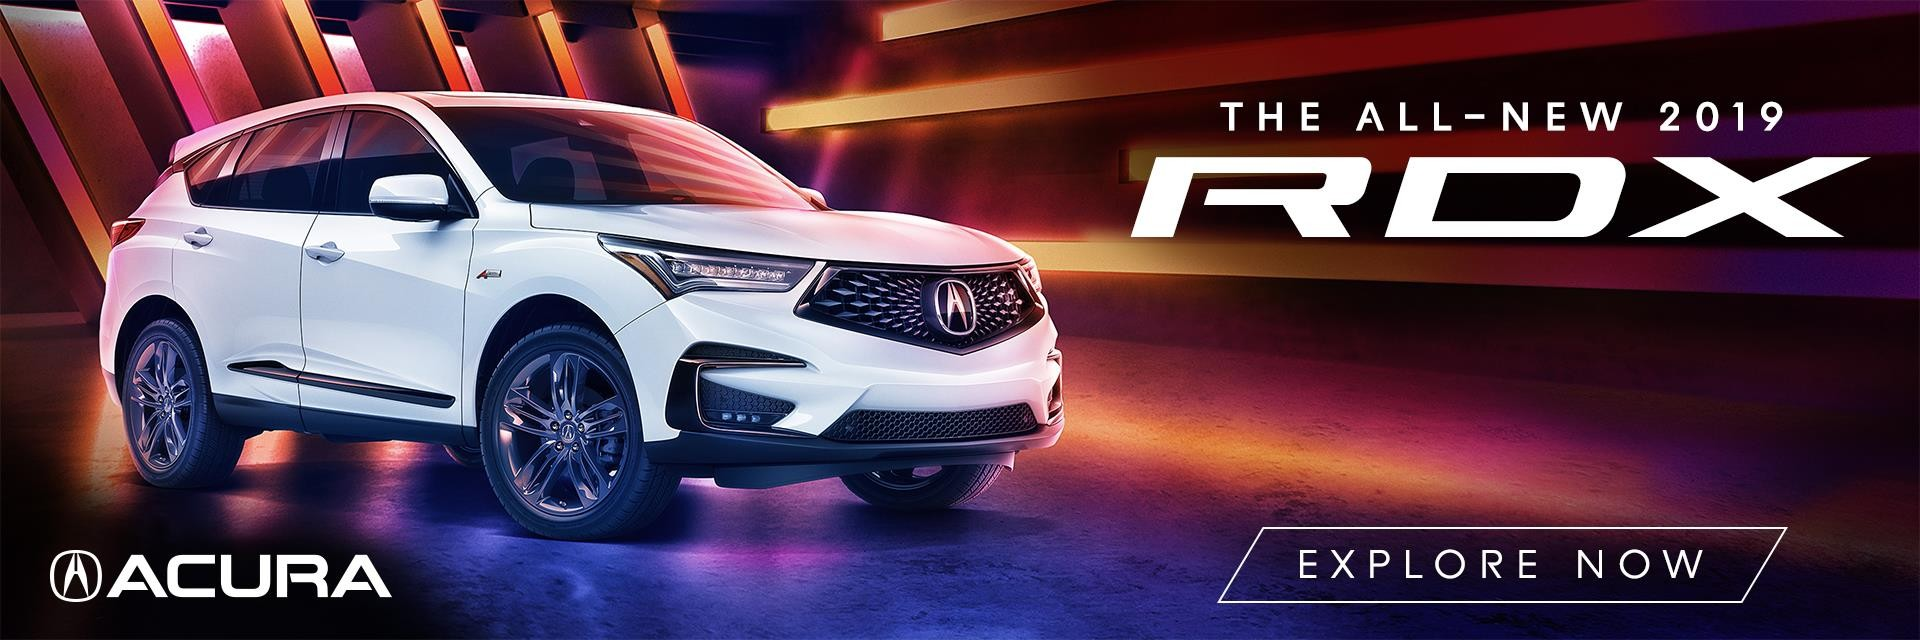 New Used Acura Vehicles In CT Connecticut Acura Dealers - Acura mdx dealers